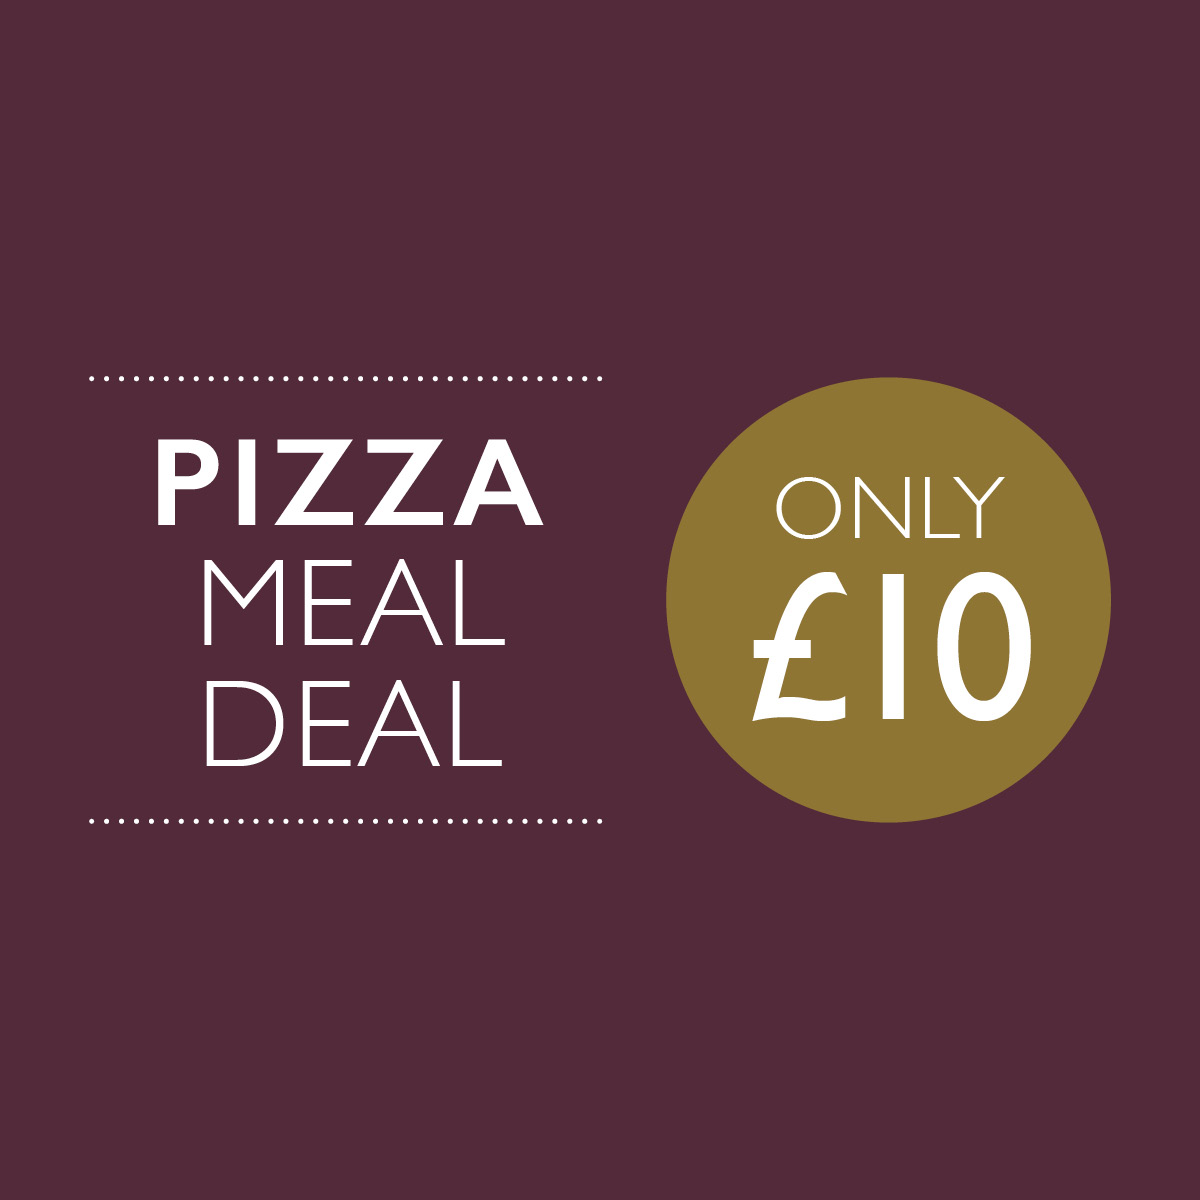 Pizza Meal Deal